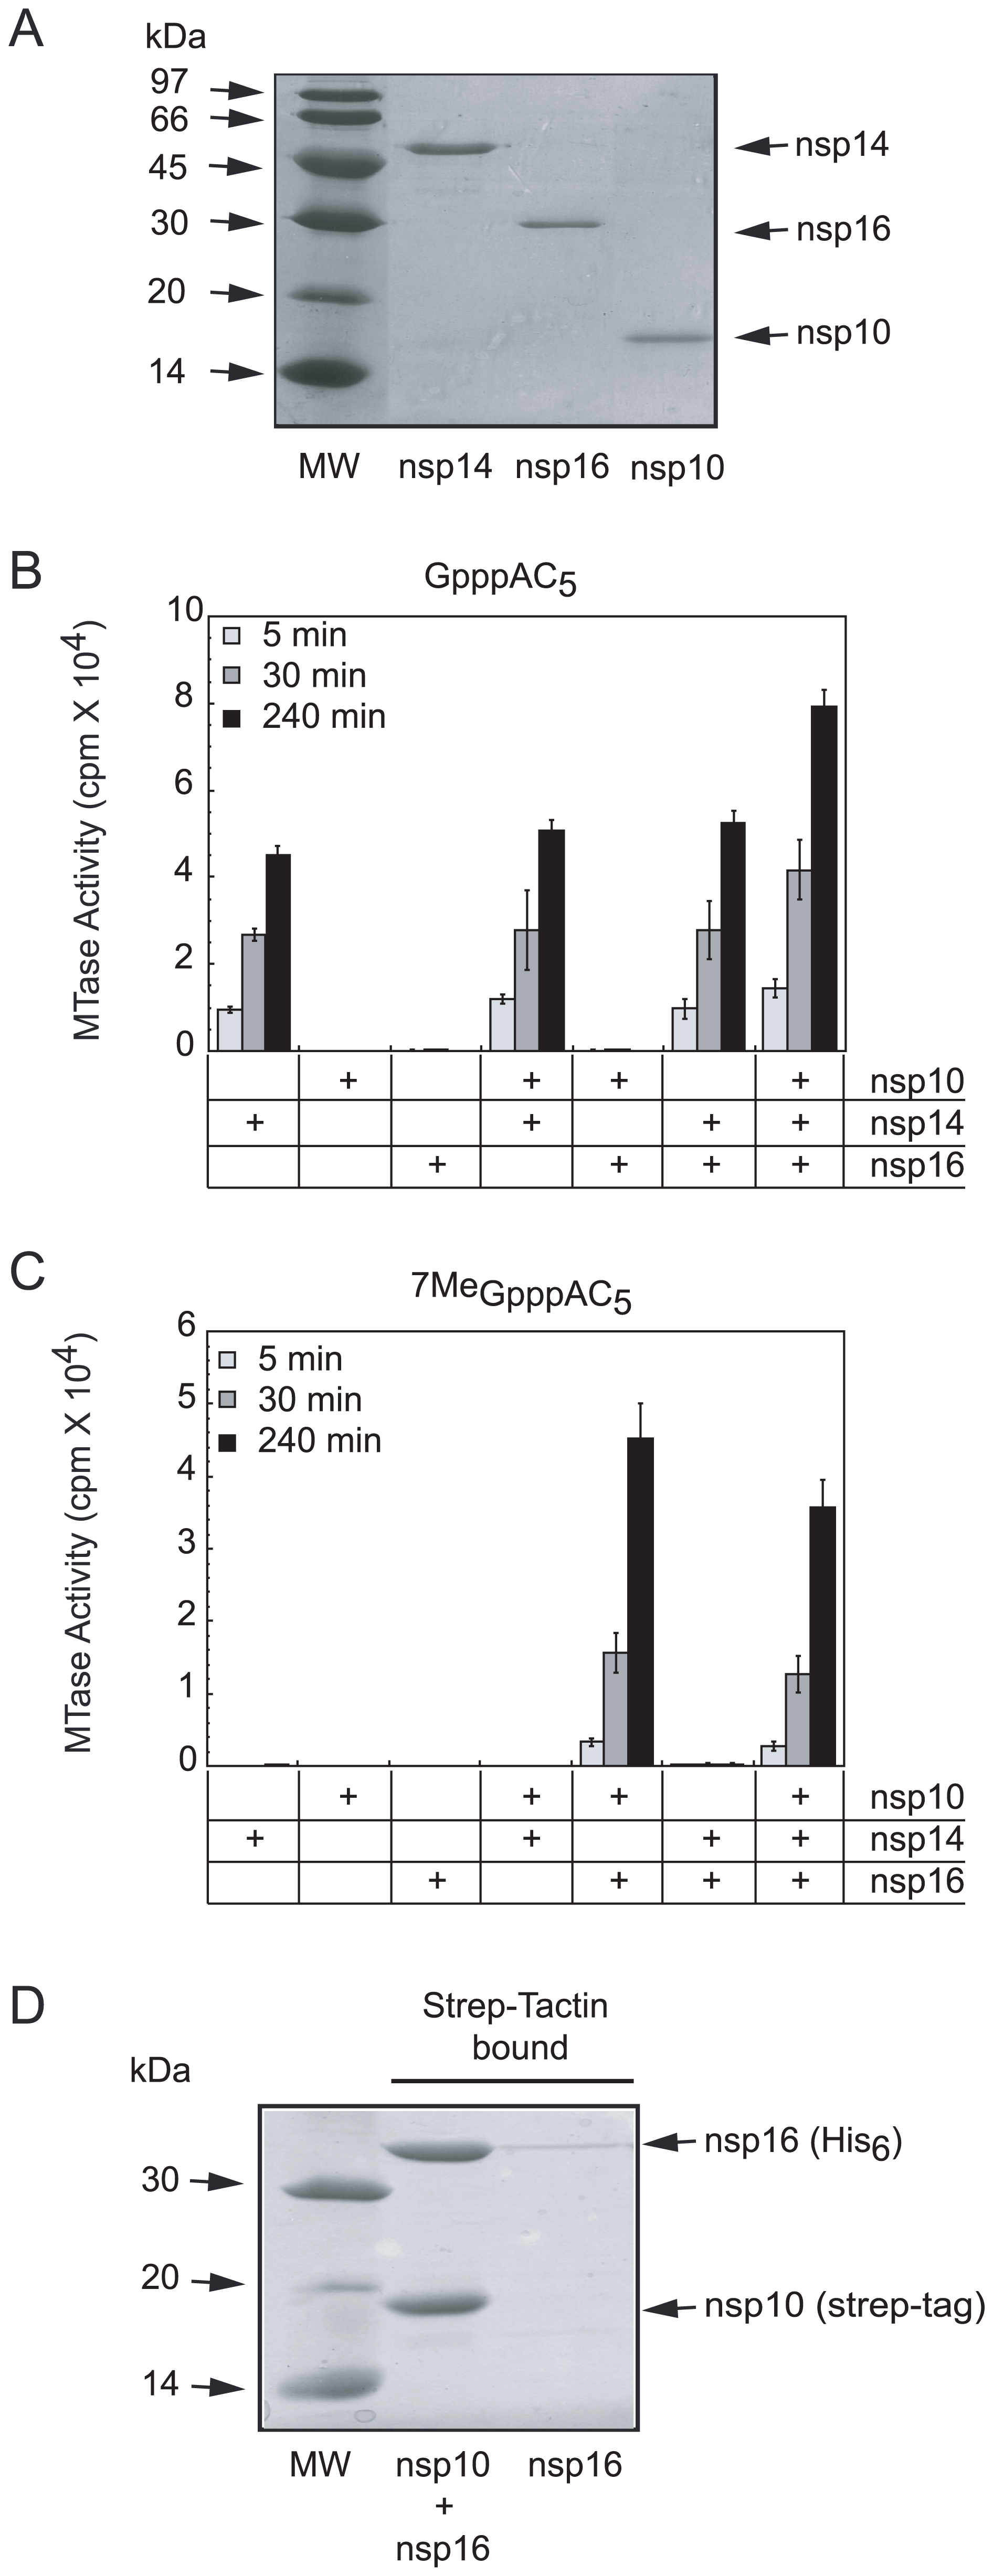 SARS-CoV proteins nsp14, nsp16 and nsp10 purification, AdoMet-dependent MTase activity on short capped RNA and complex formation of nsp16/nsp10.